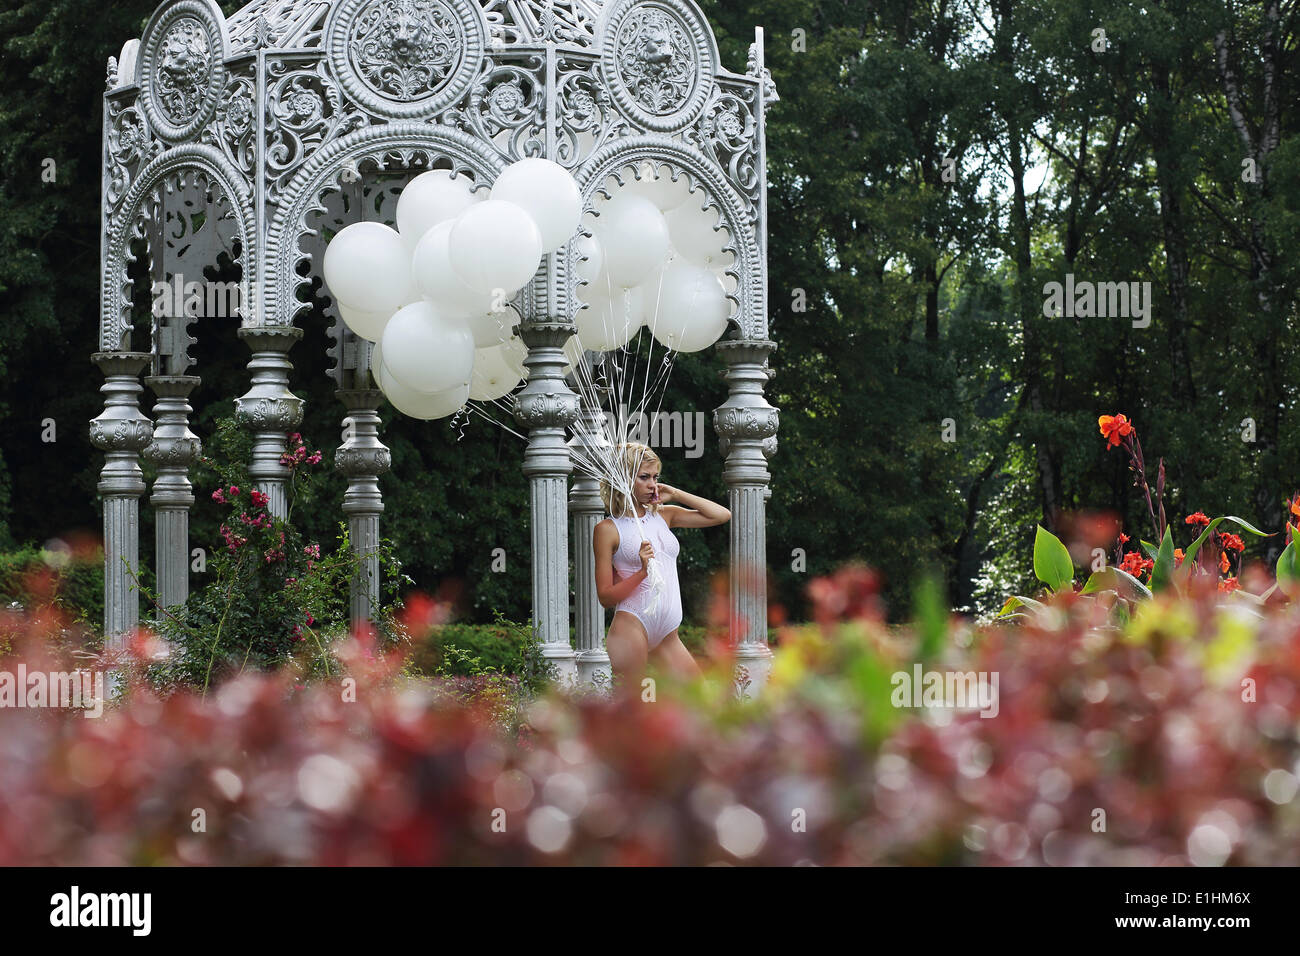 Lovely Young Woman with Balloons in the Park - Stock Image